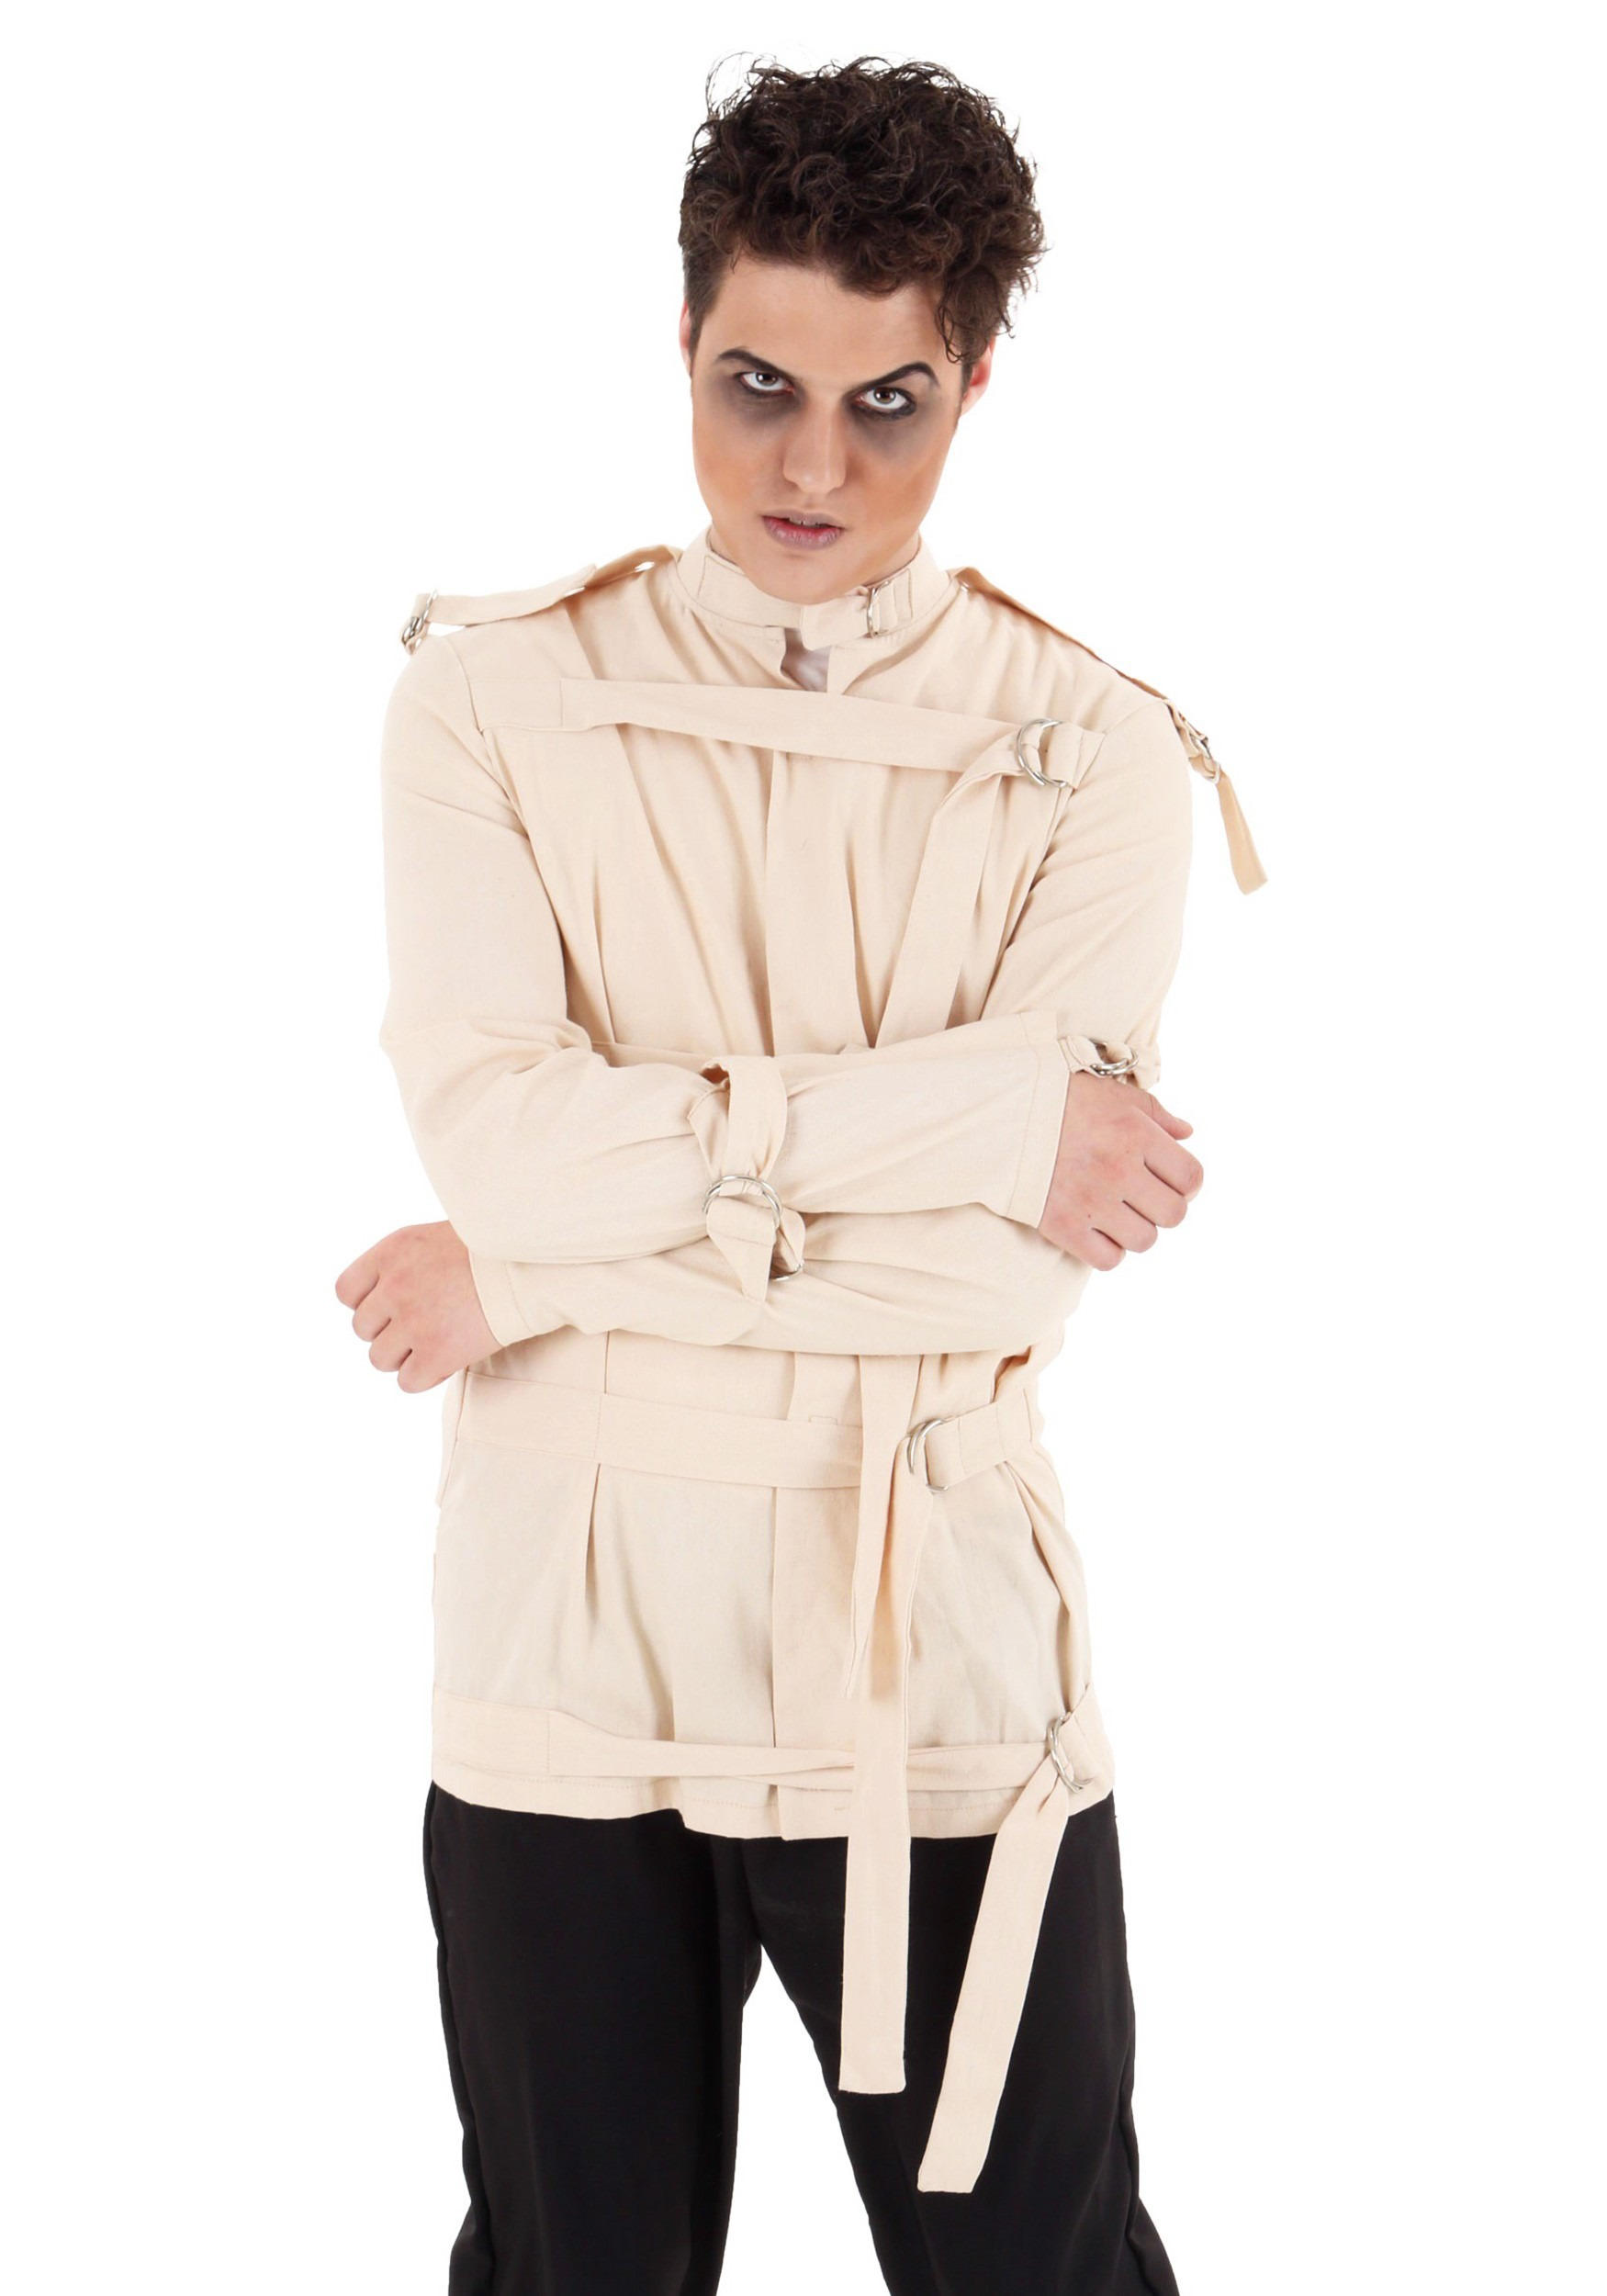 Straight Jacket Fashion Meaning - Coat Nj